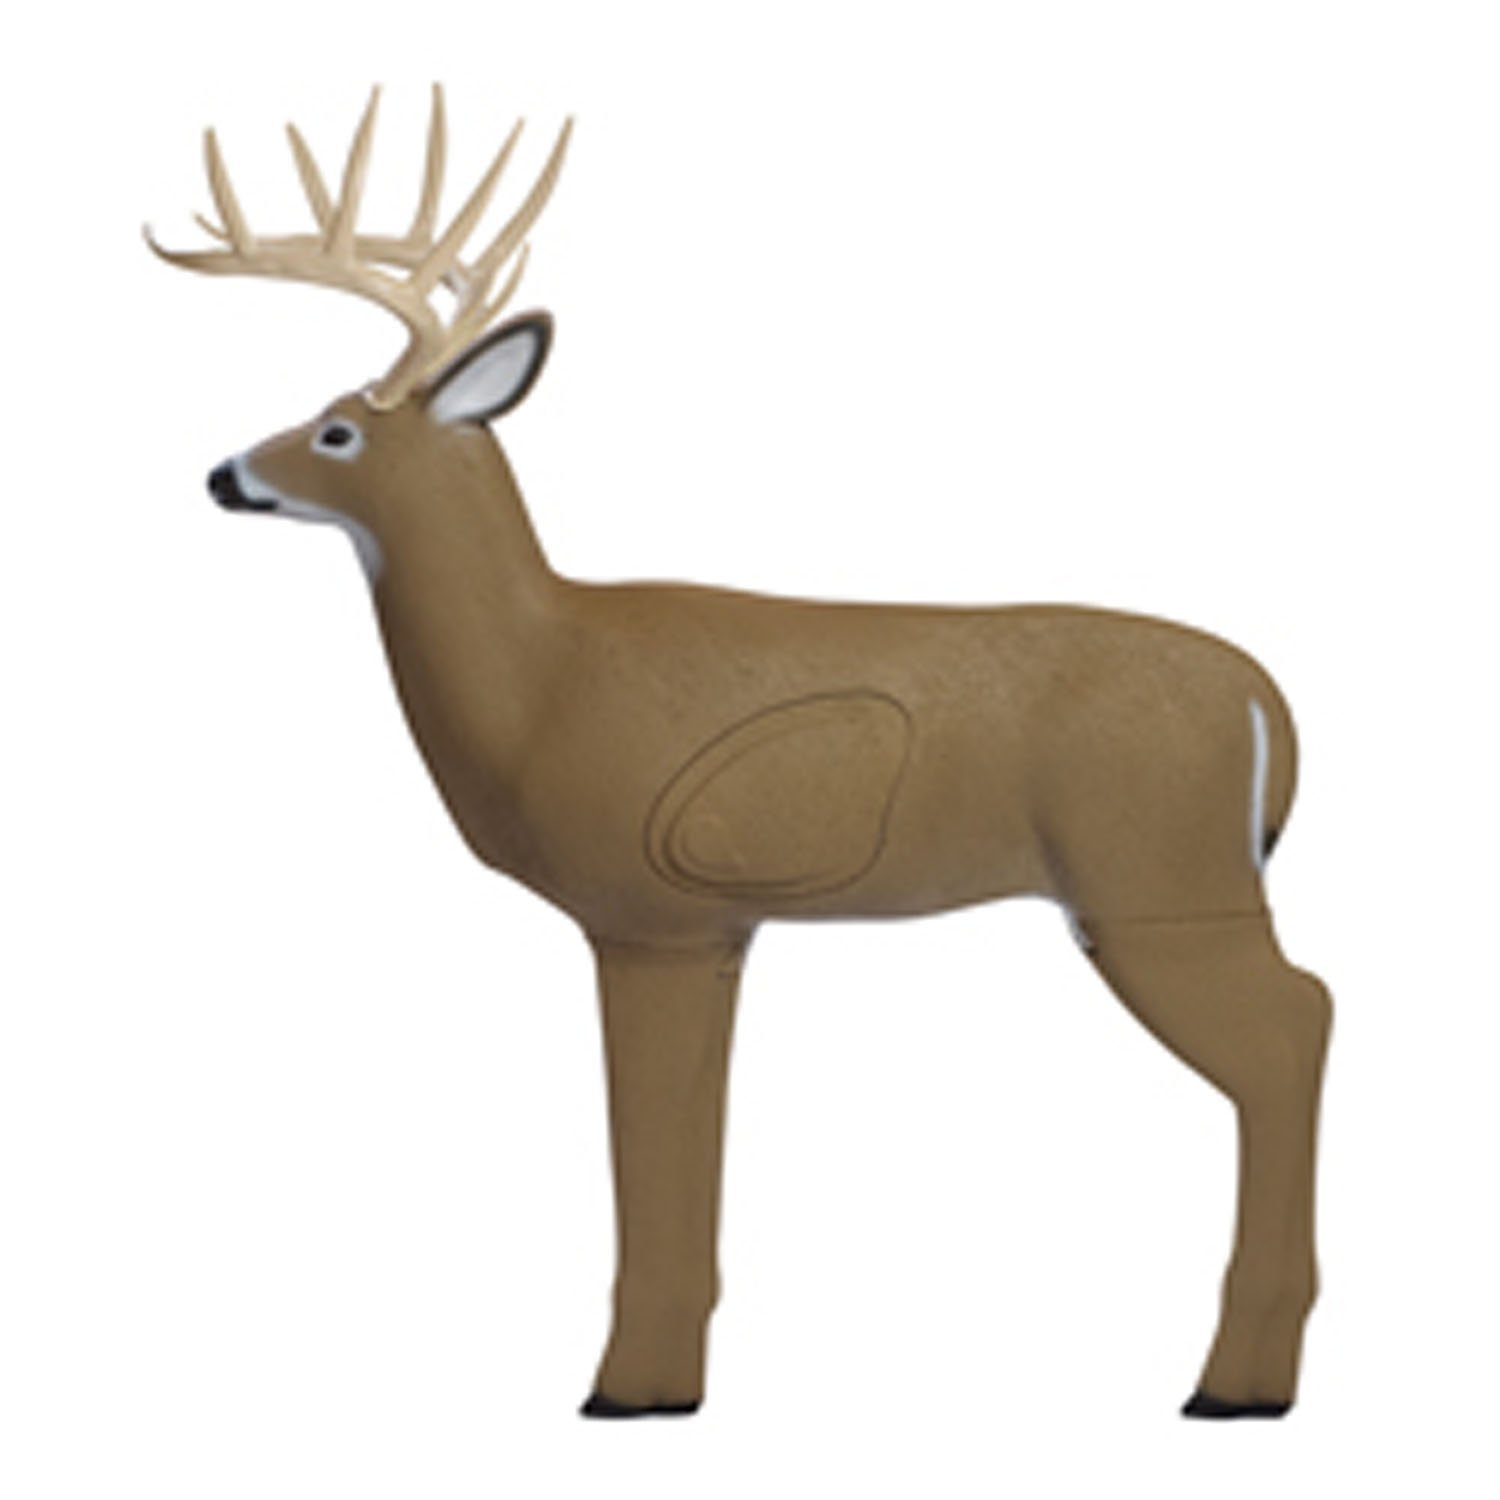 Best Archery Target For Sale